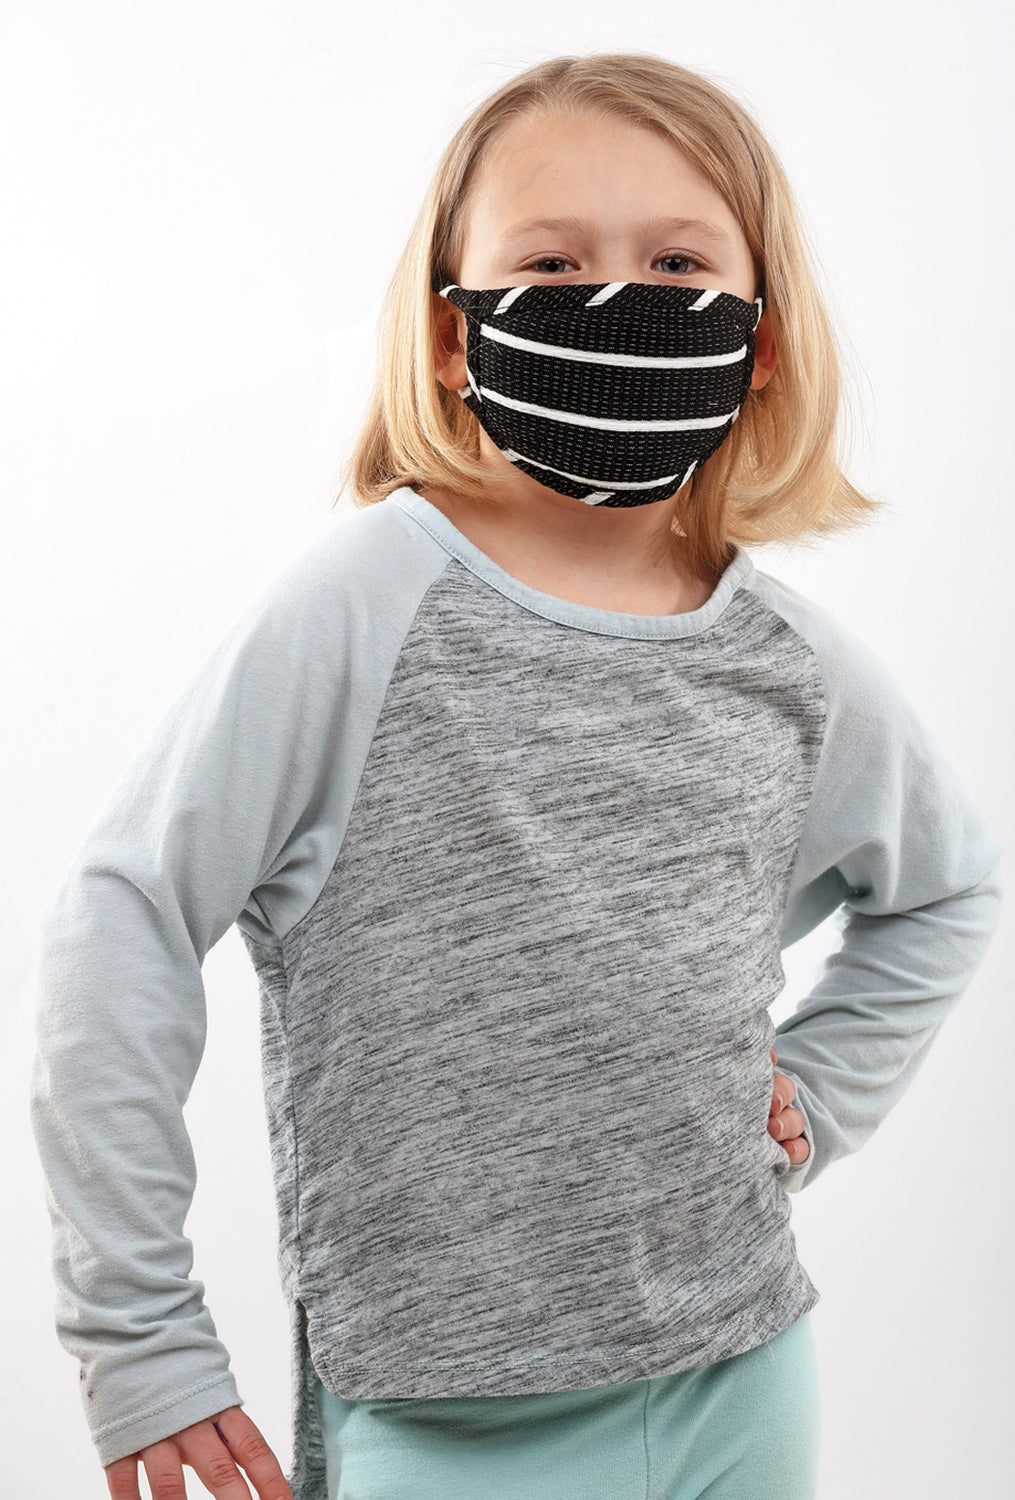 Coin1804 Kiddie Coin Face Mask, Black Stripe